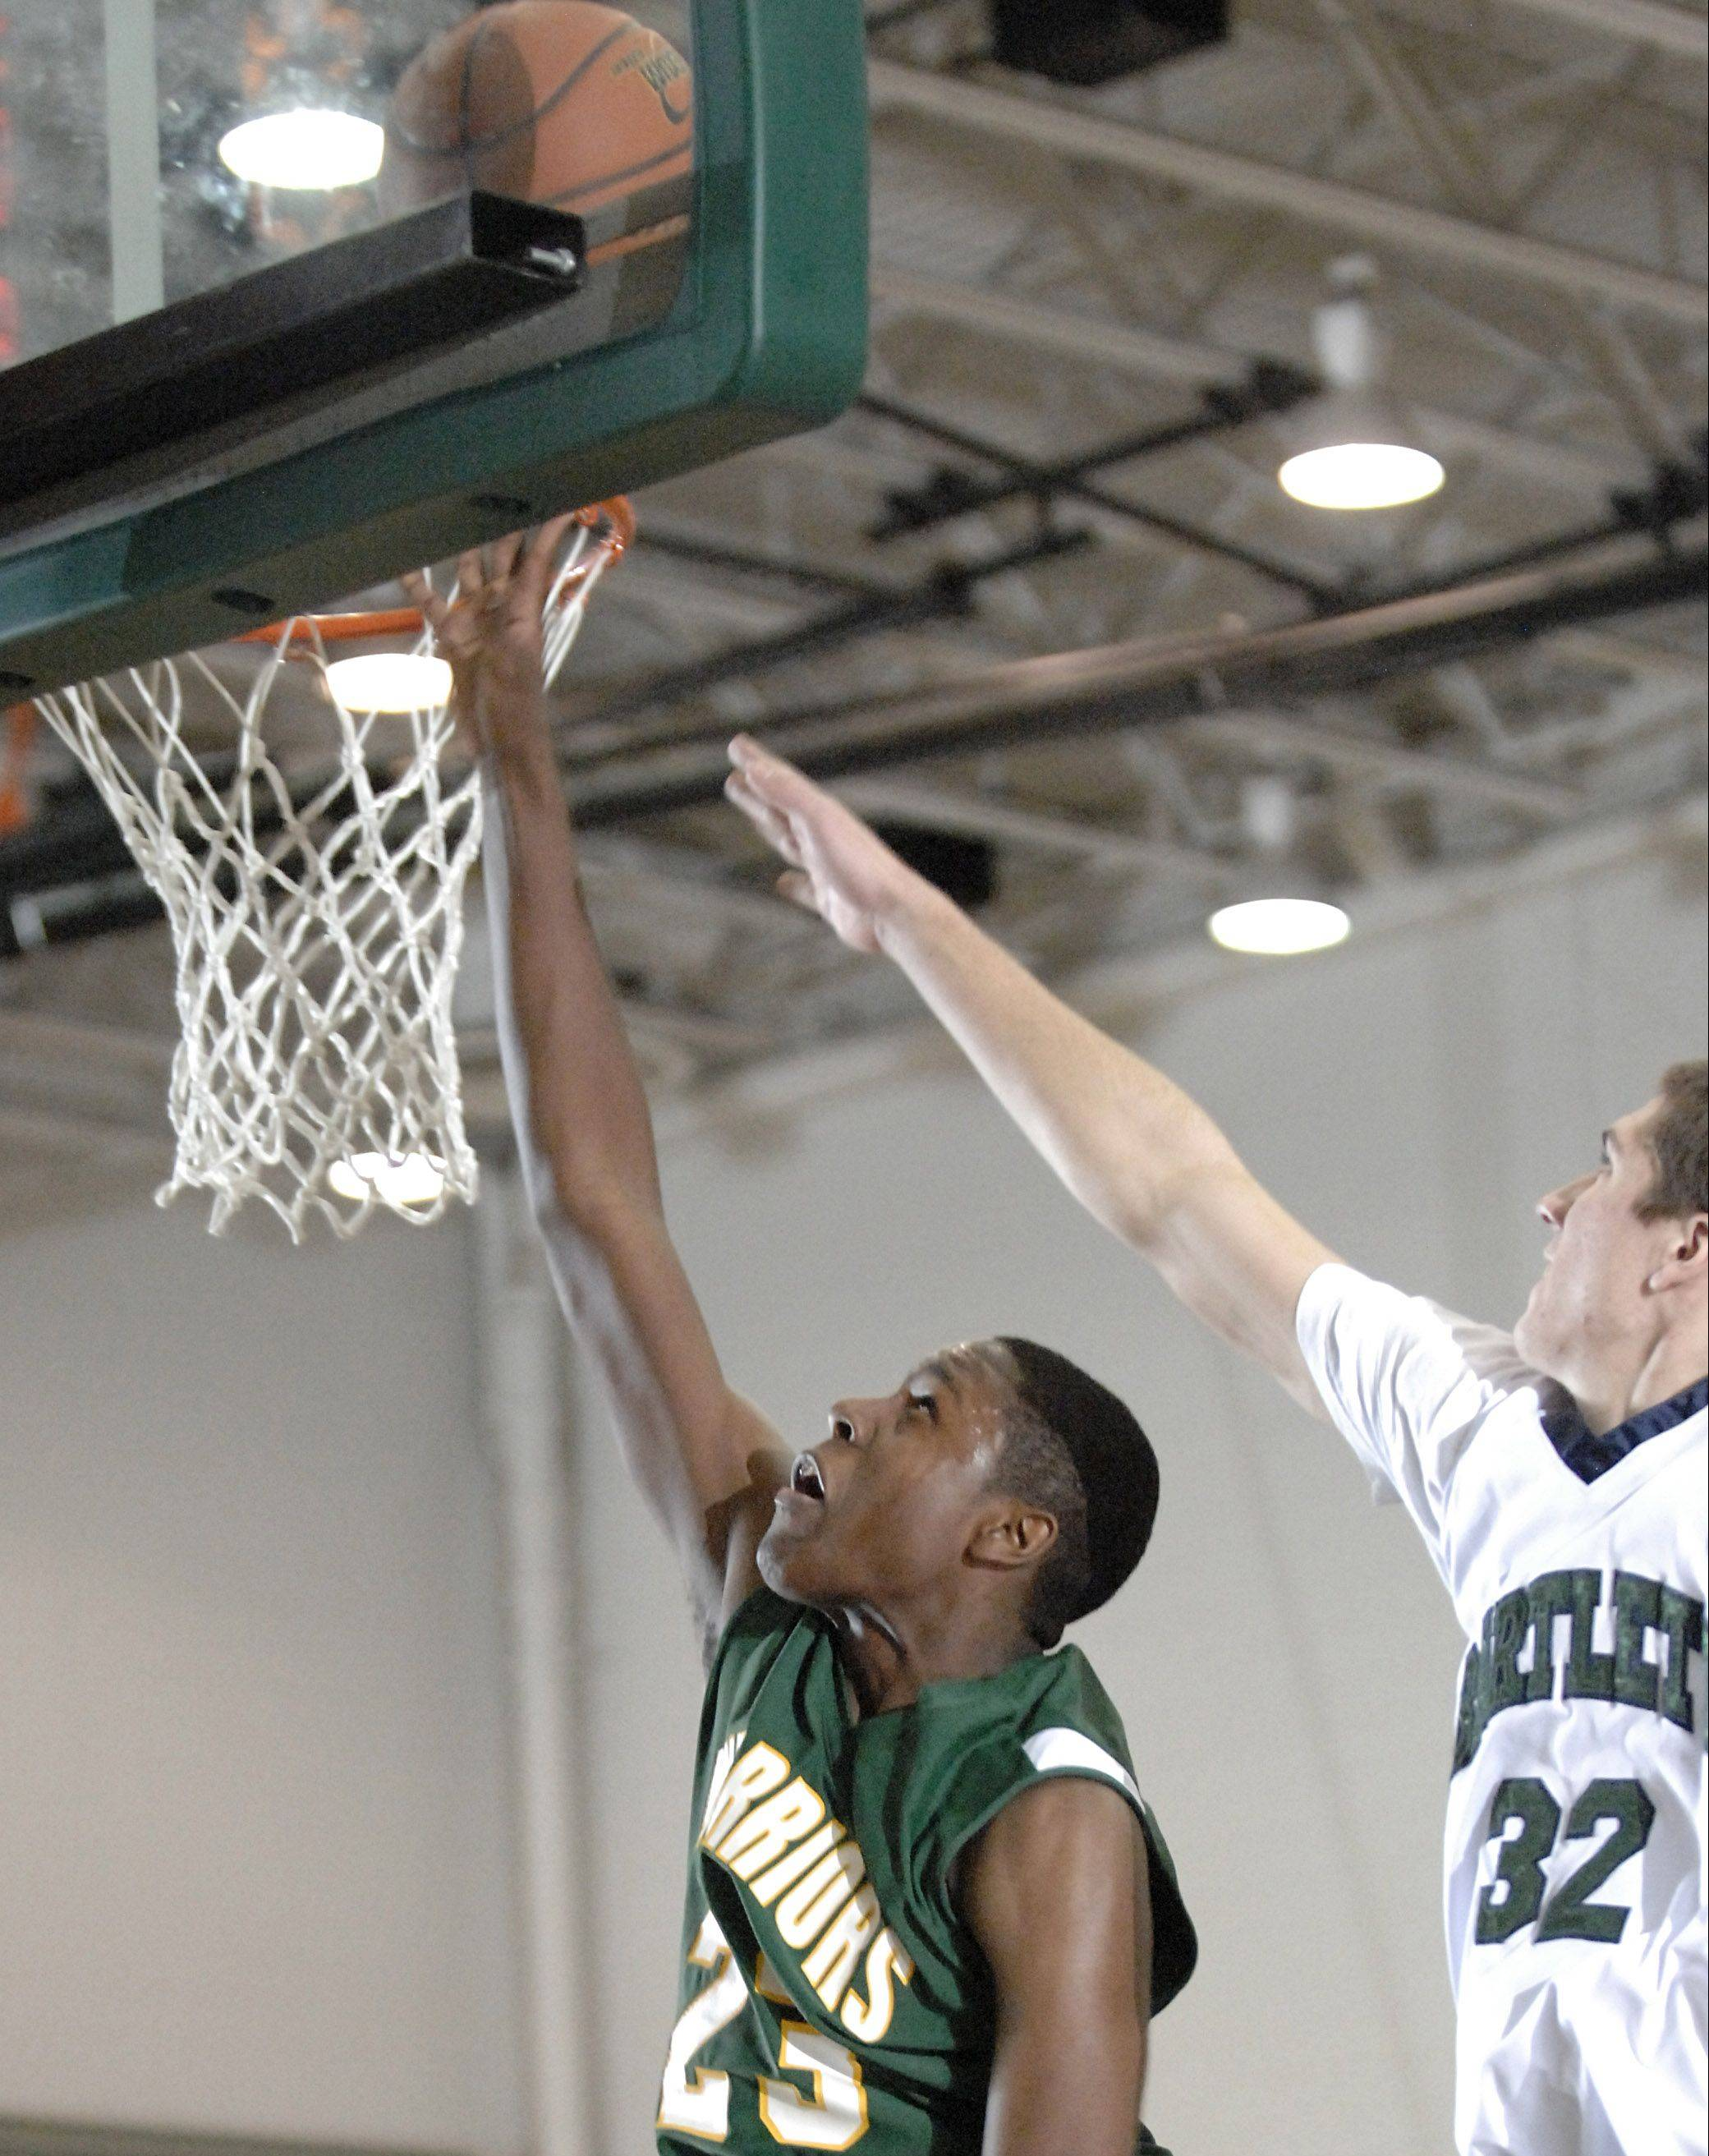 Waubonsie Valley's Jared Brownridge committed Tuesday to play basketball at Santa Clara University in California next year.